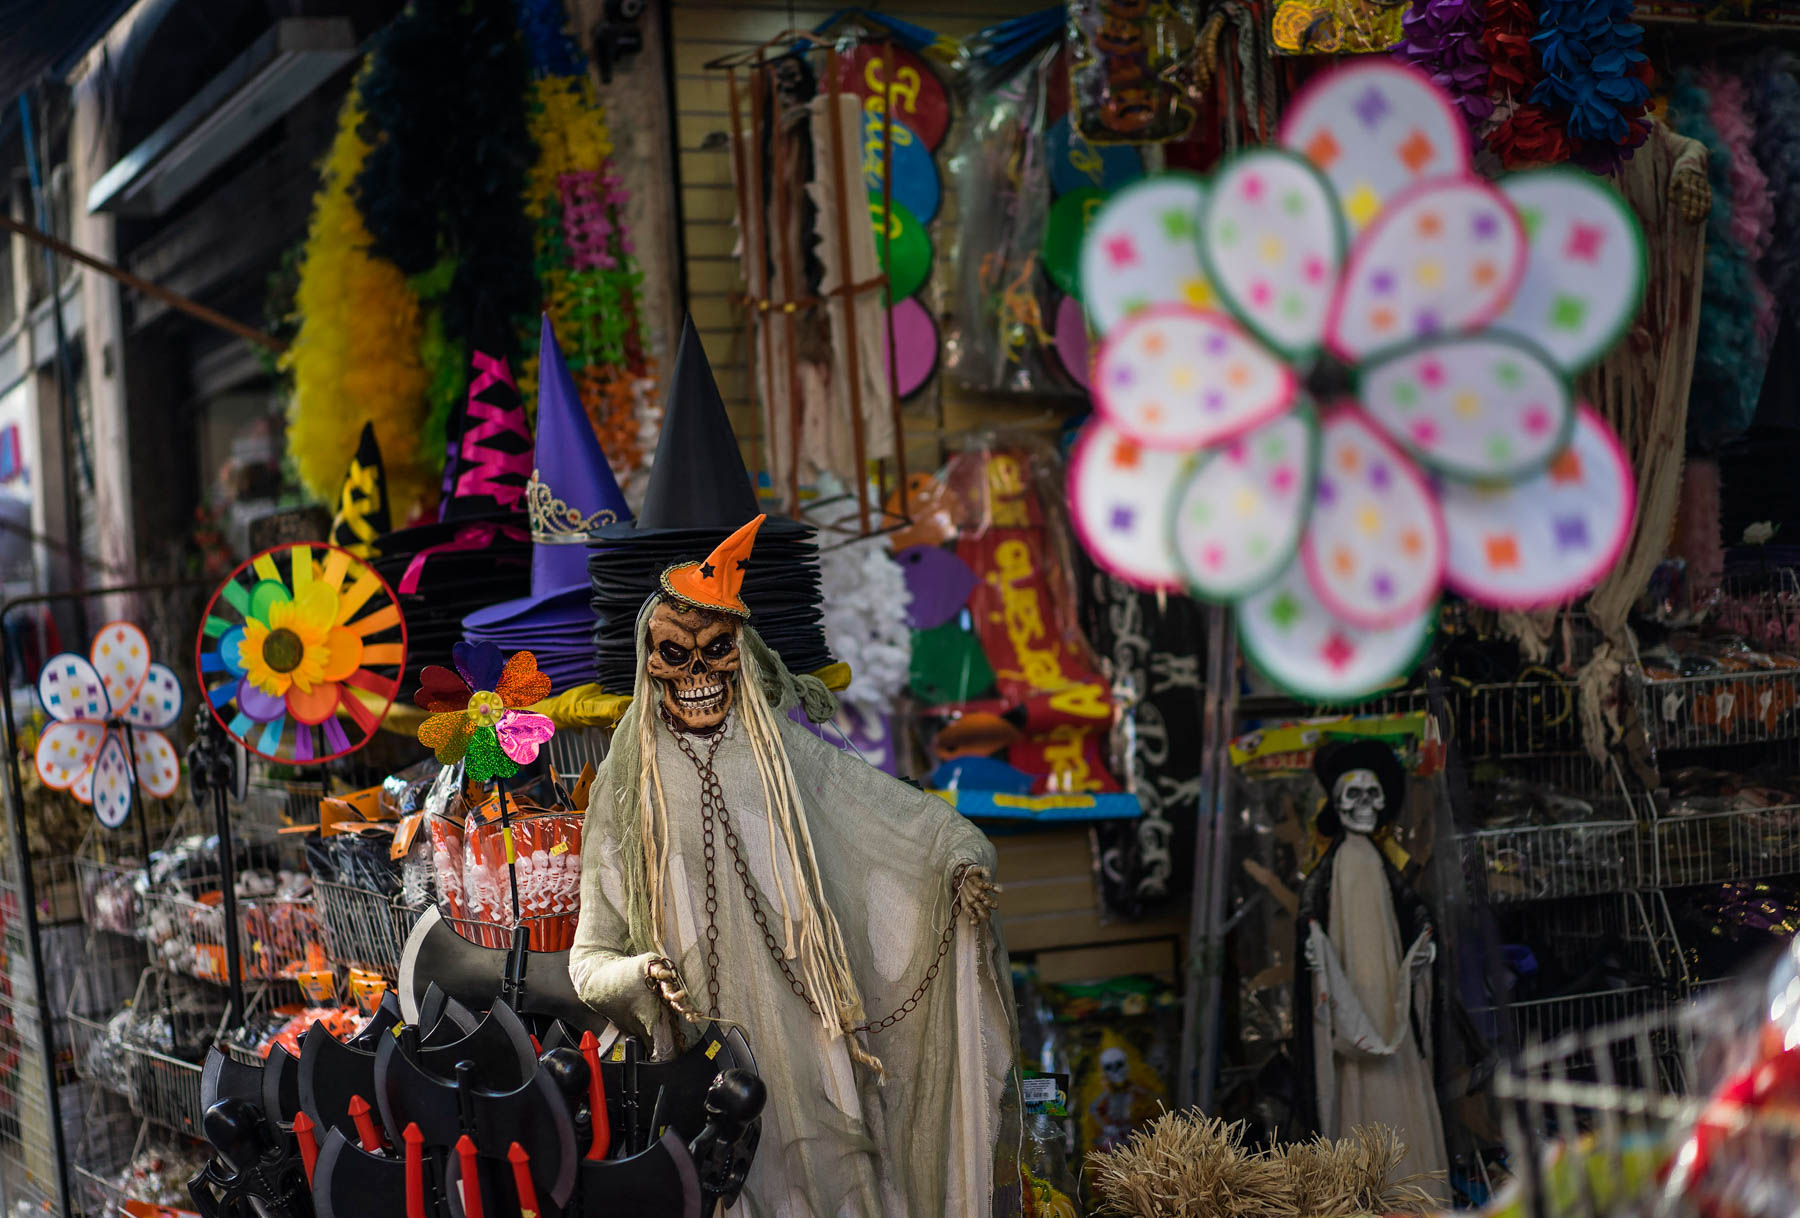 Smiling skeleton in Halloween costume standing among colorful items for sale (© AP Images)